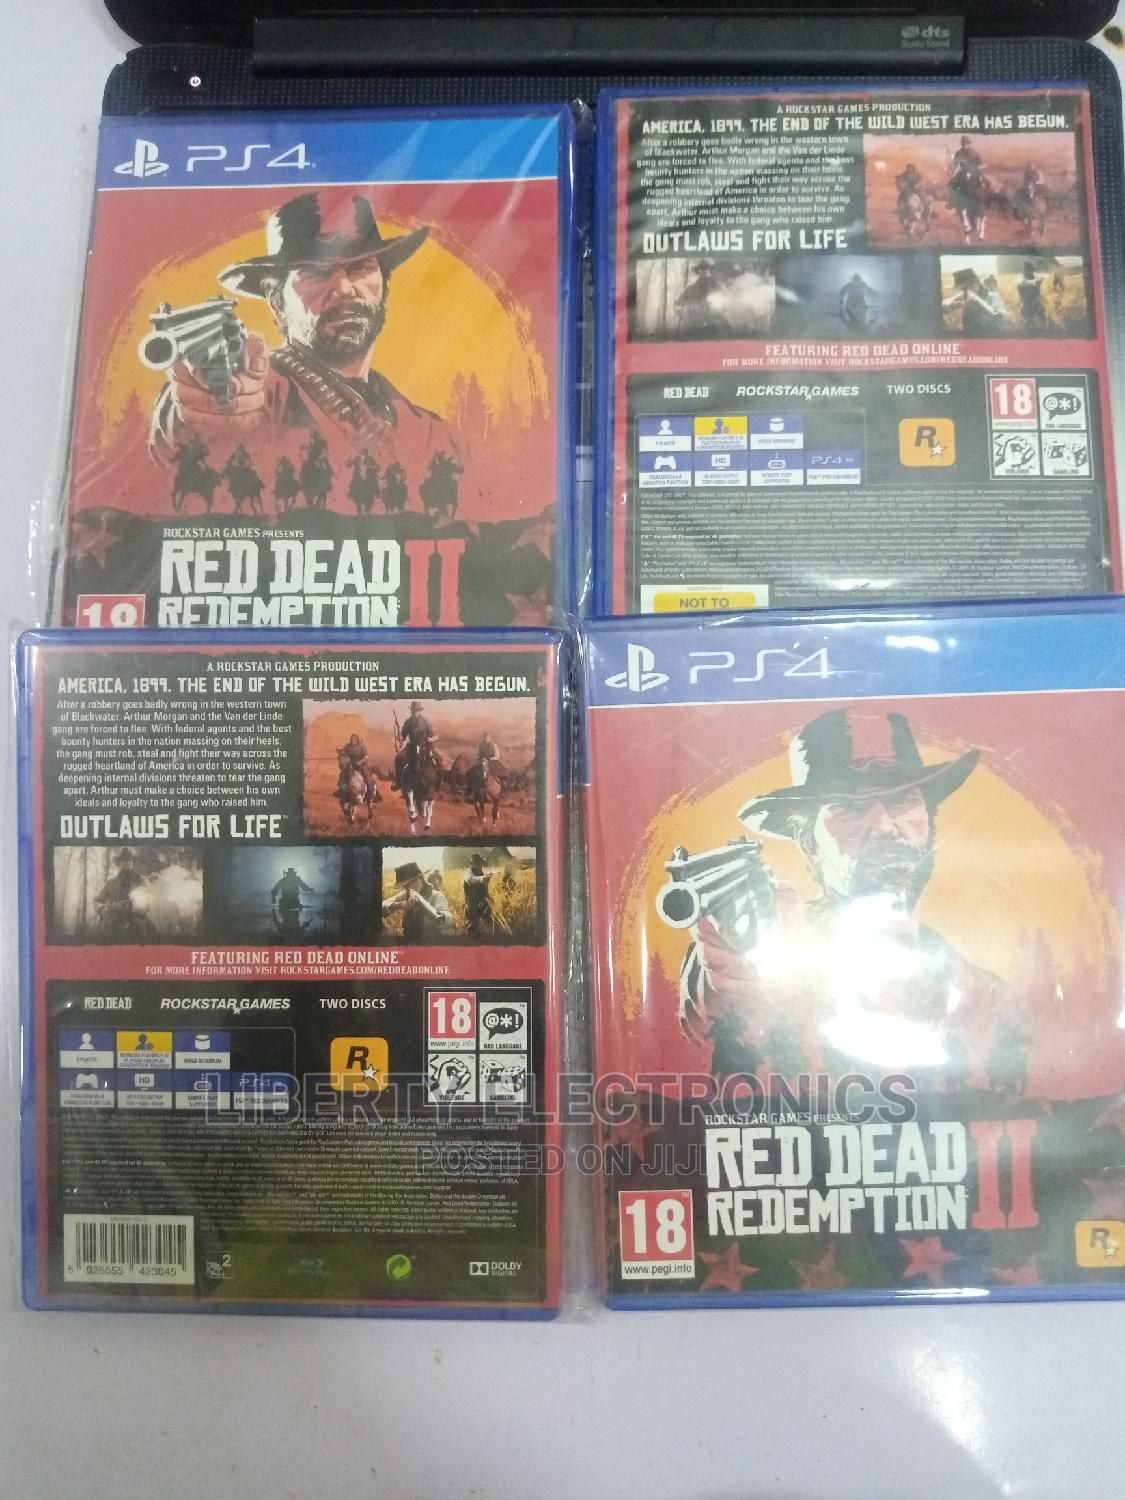 Promo Red Dead Redemption 2.